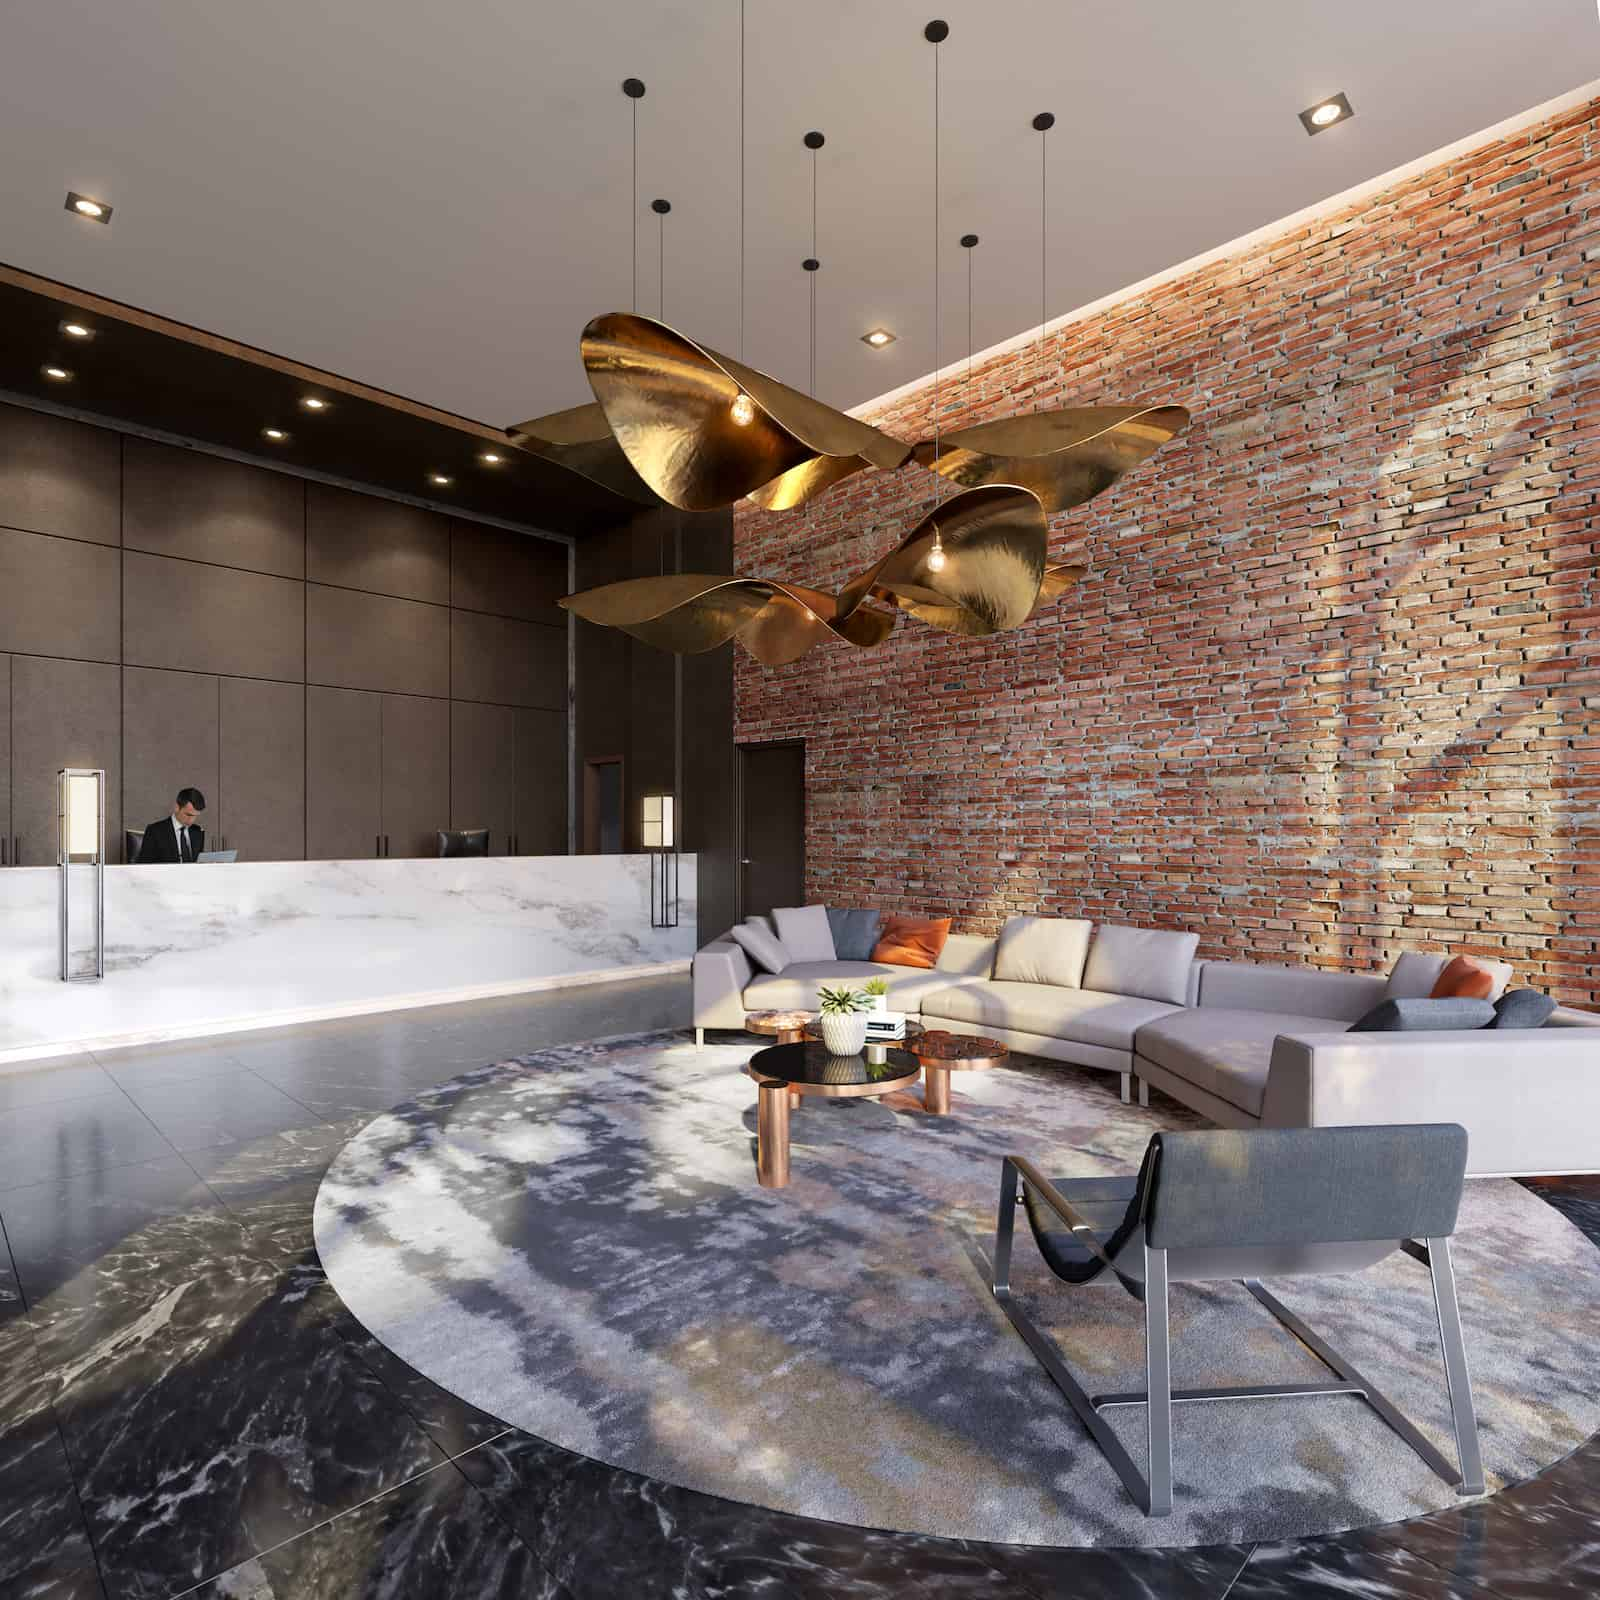 Interior rendering of 8 Haus Boutique condos lobby with concierge desk.